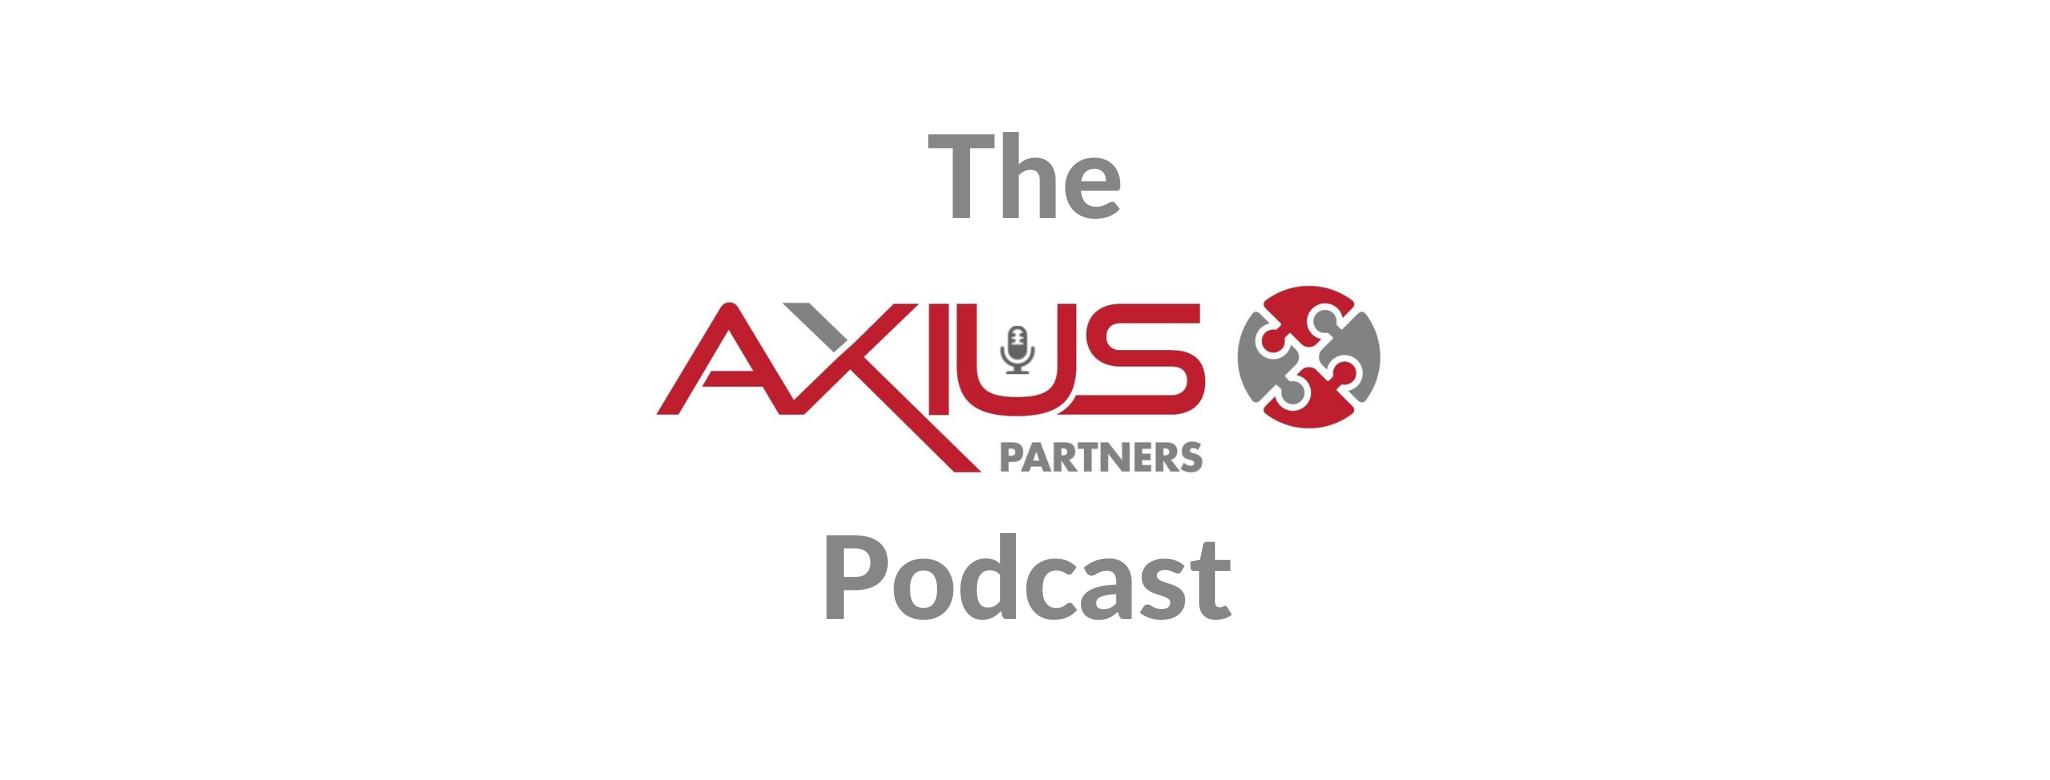 Axius Podcast Banner (2)